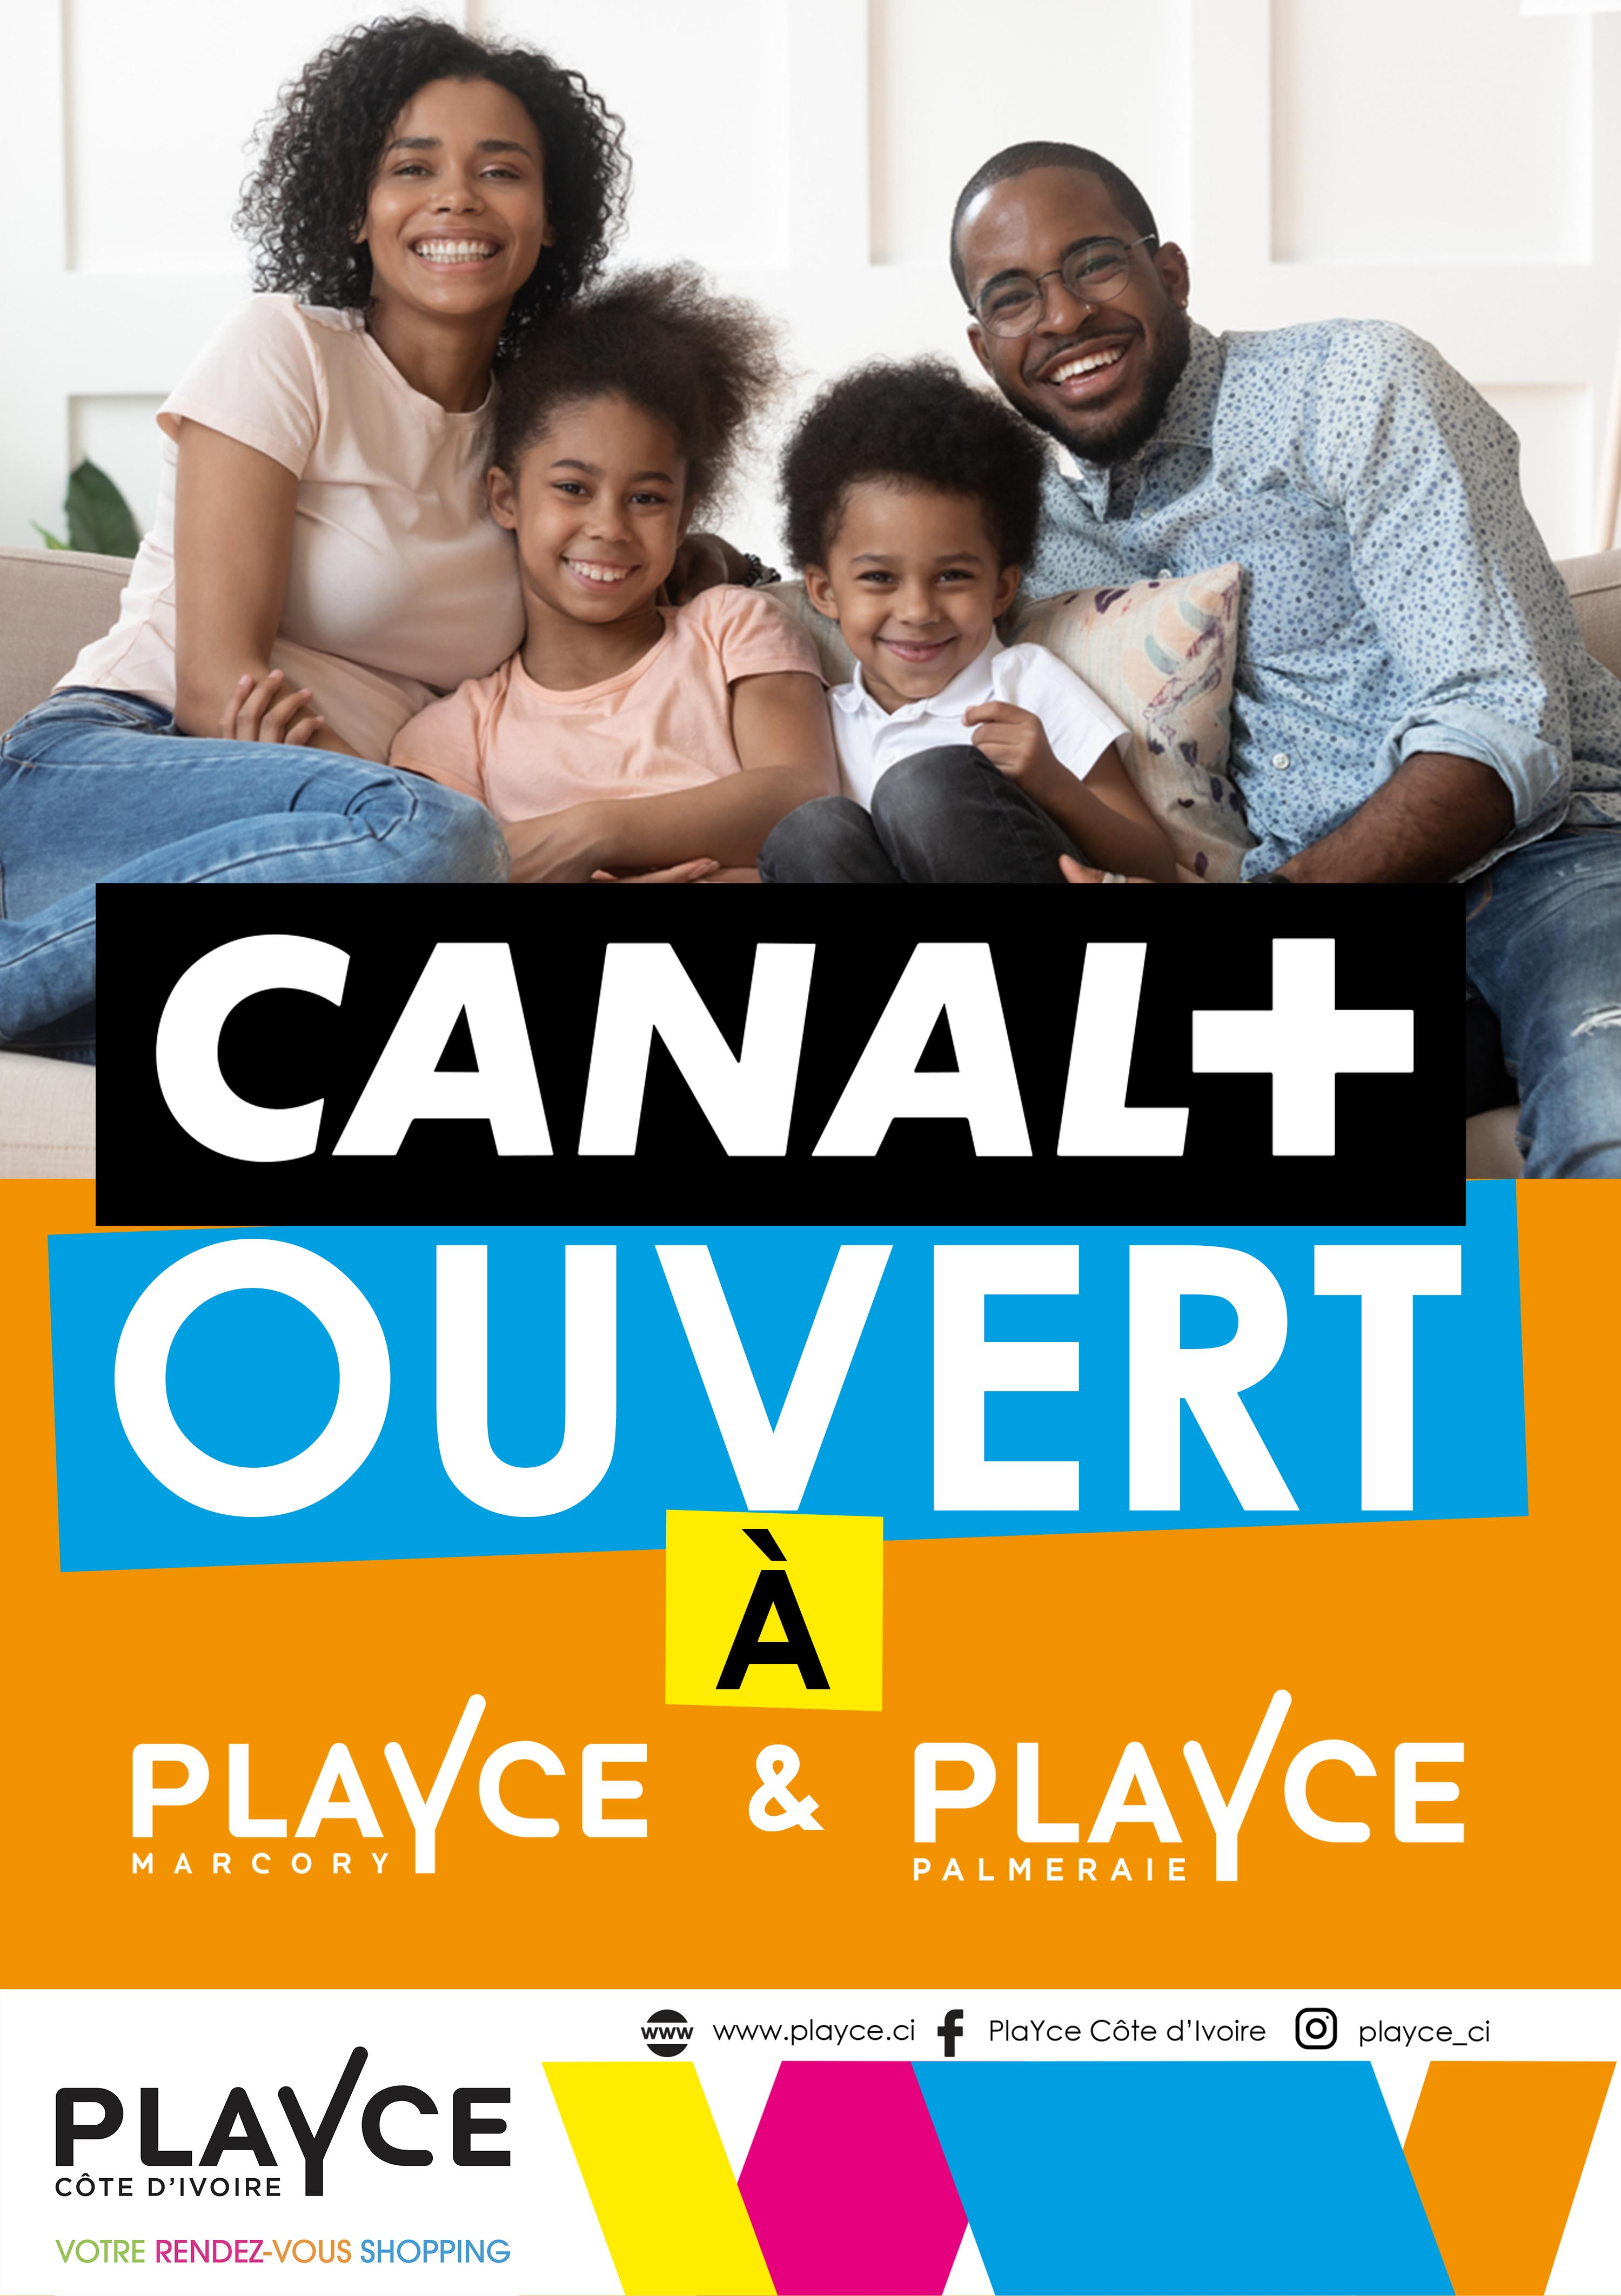 Canal+ ouvert